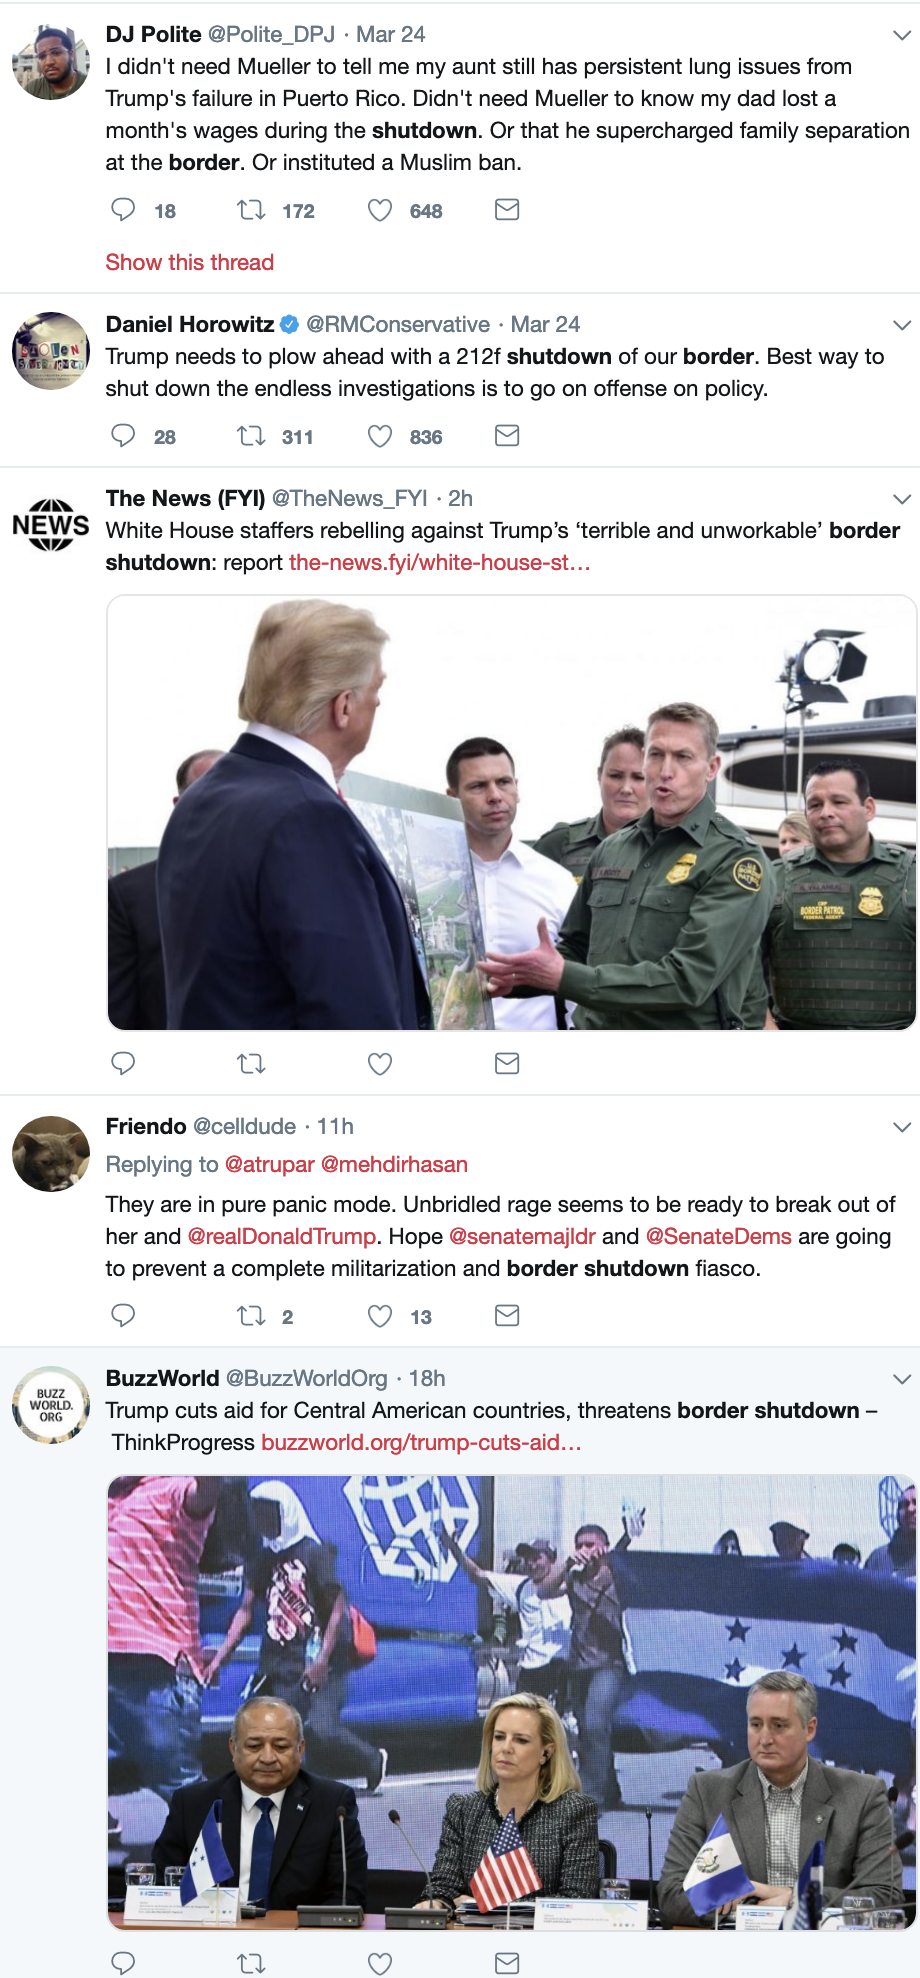 Screen-Shot-2019-03-31-at-12.49.55-PM Trump's Trusted Border Officials Publicly Throw Him Under The Bus (DETAILS) Child Abuse Corruption Crime Donald Trump Immigration Politics Racism Refugees Top Stories